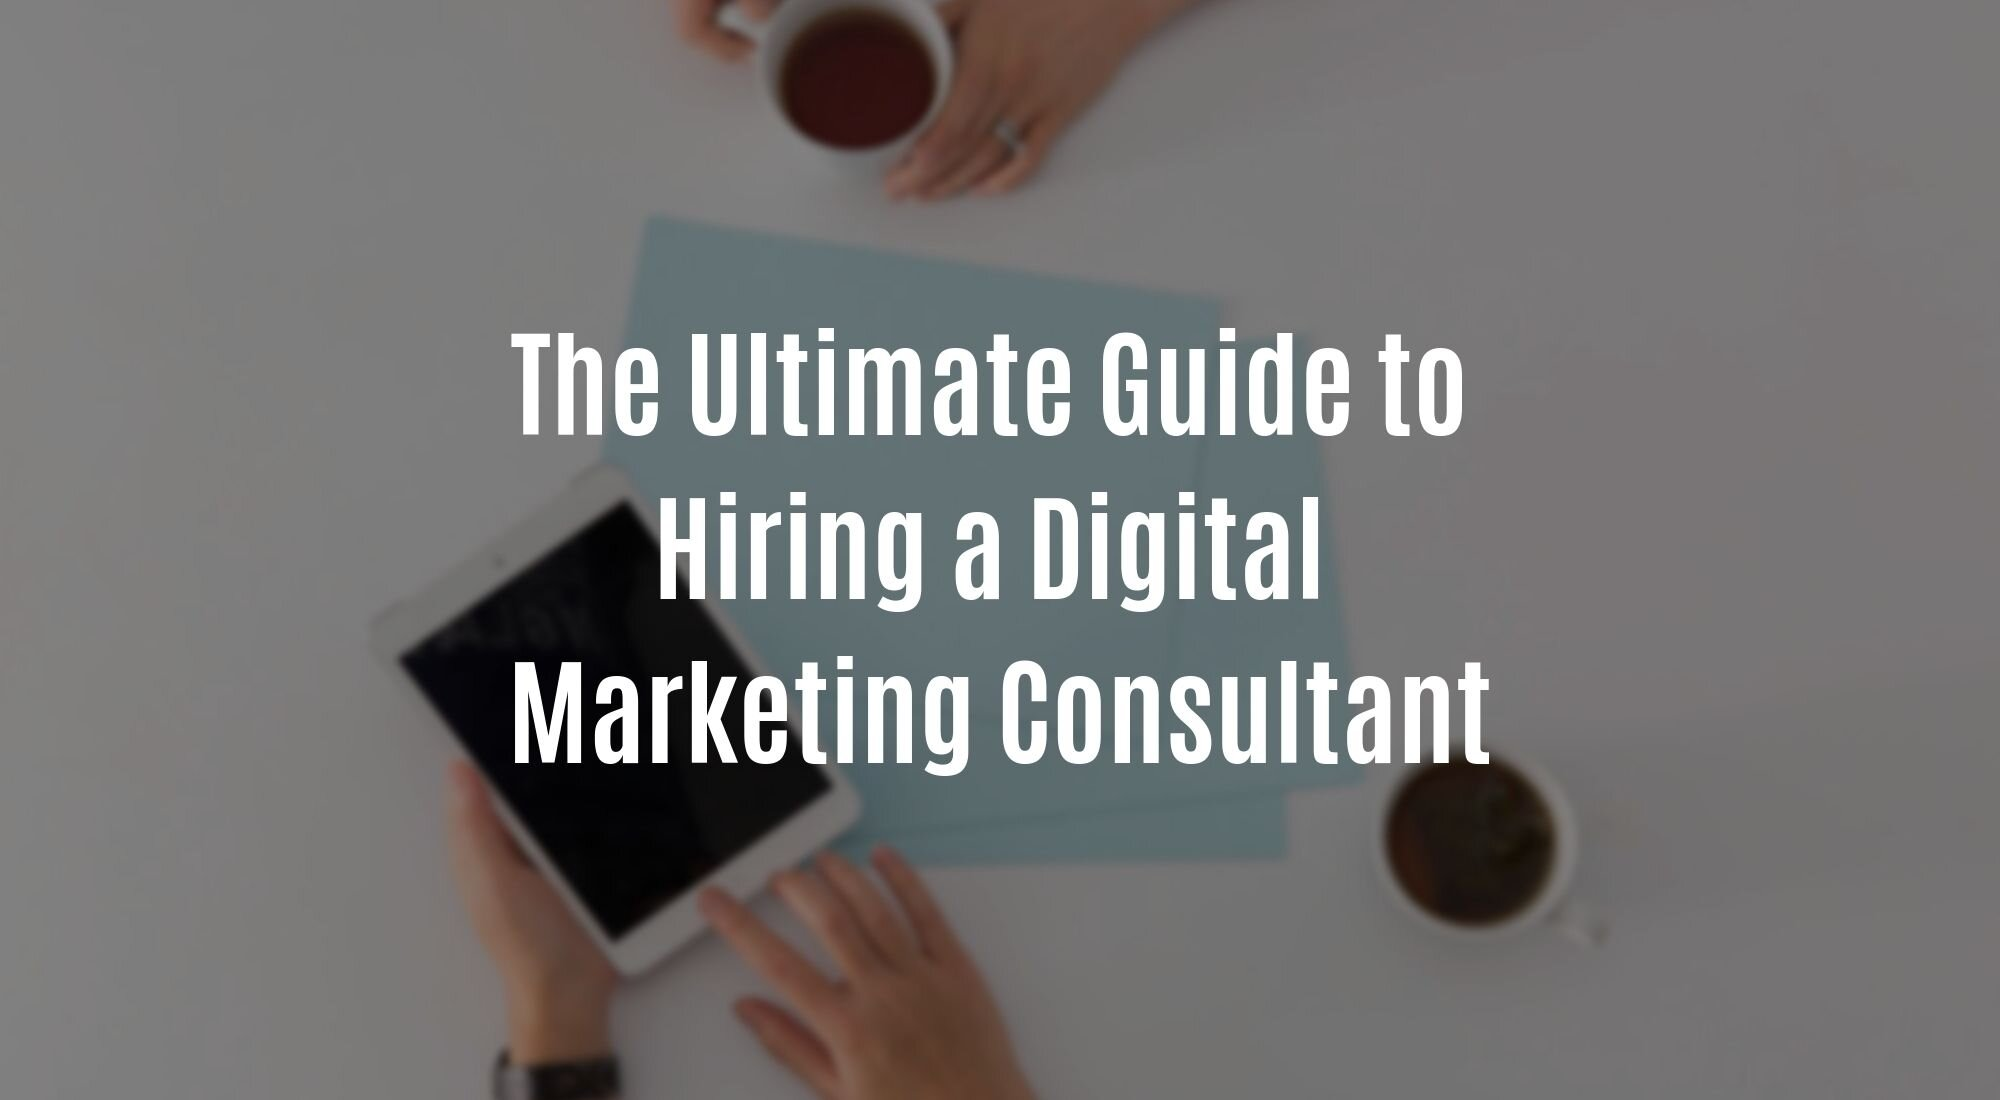 The Ultimate Guide to Hiring a Digital Marketing Consultant.jpg